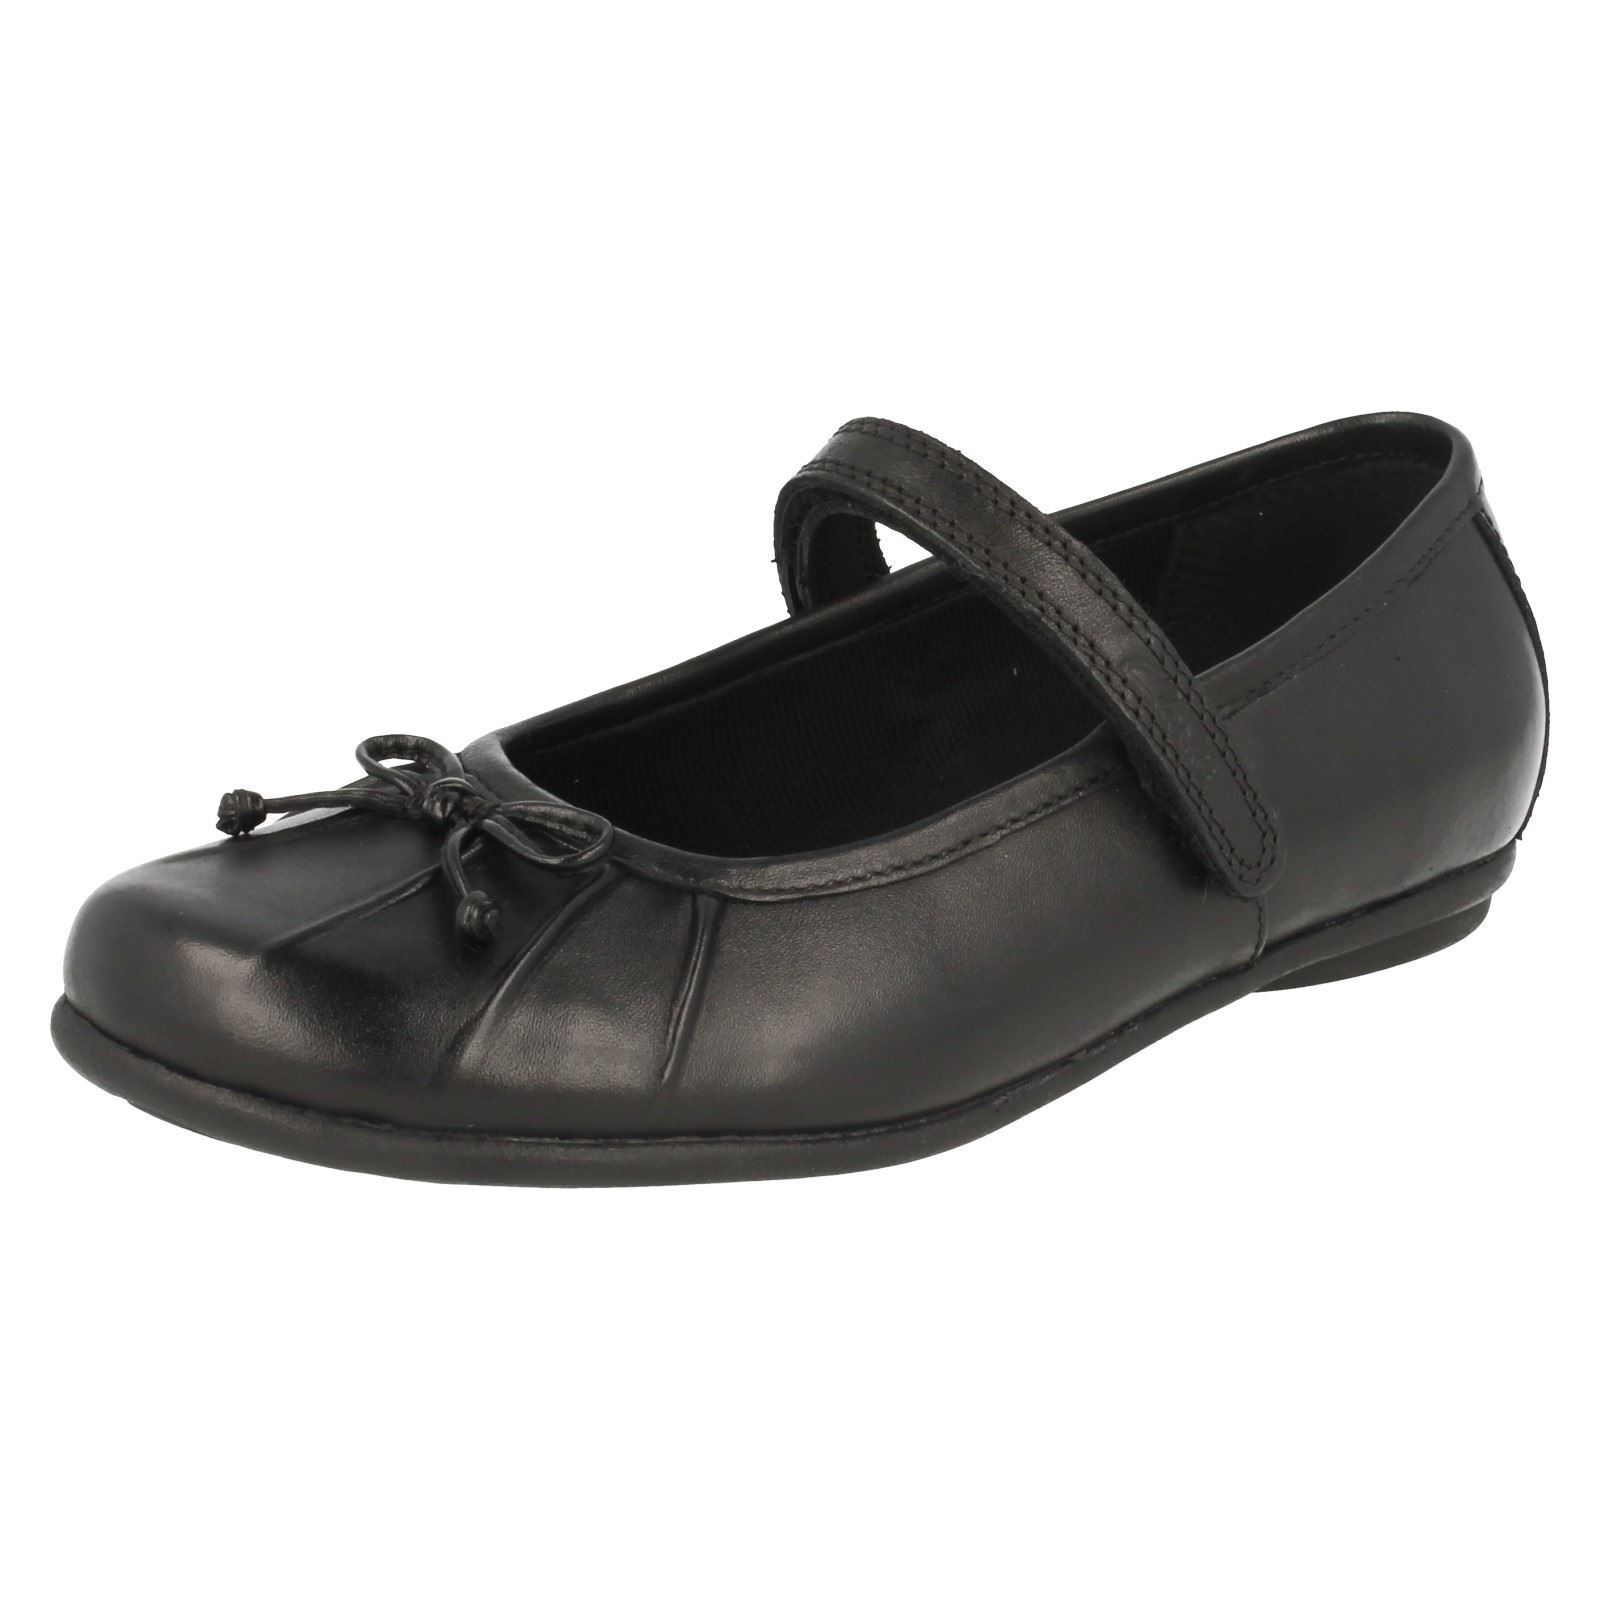 Girls Clarks Formal/School Shoes - Tasha Ally